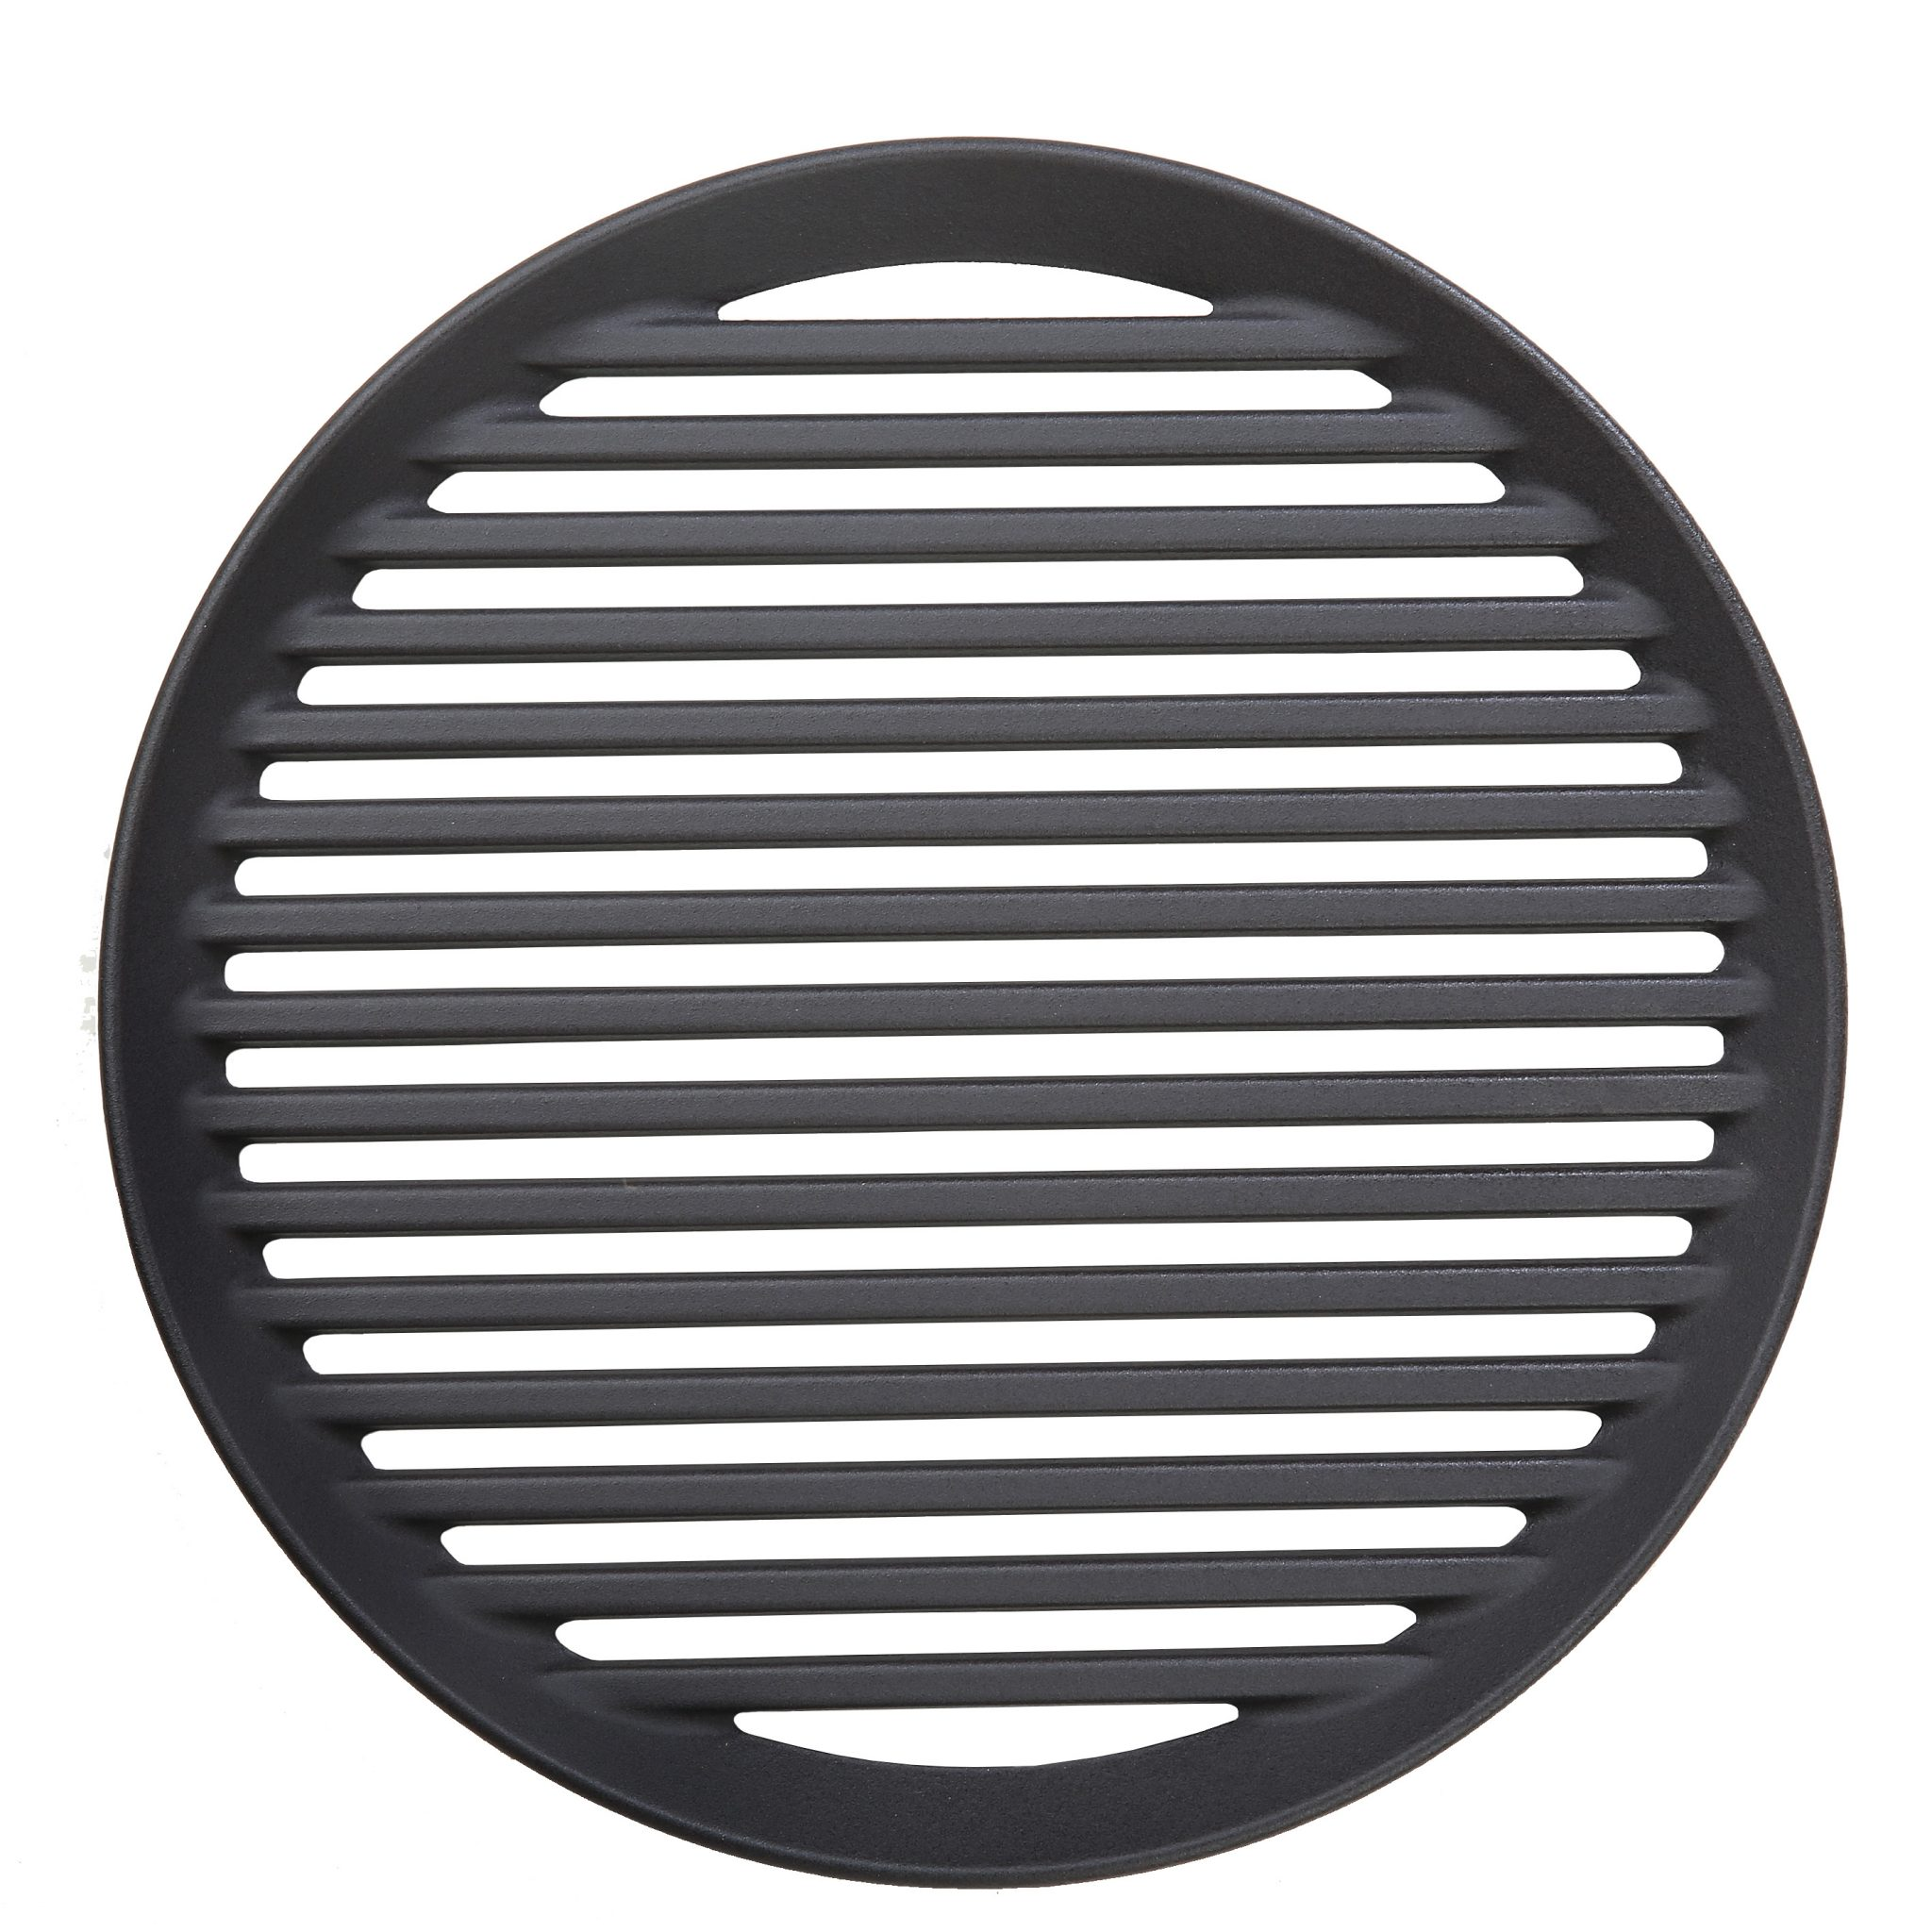 Mors 248 Cast Iron Grill Grate For Grill Forno 248 Soliving